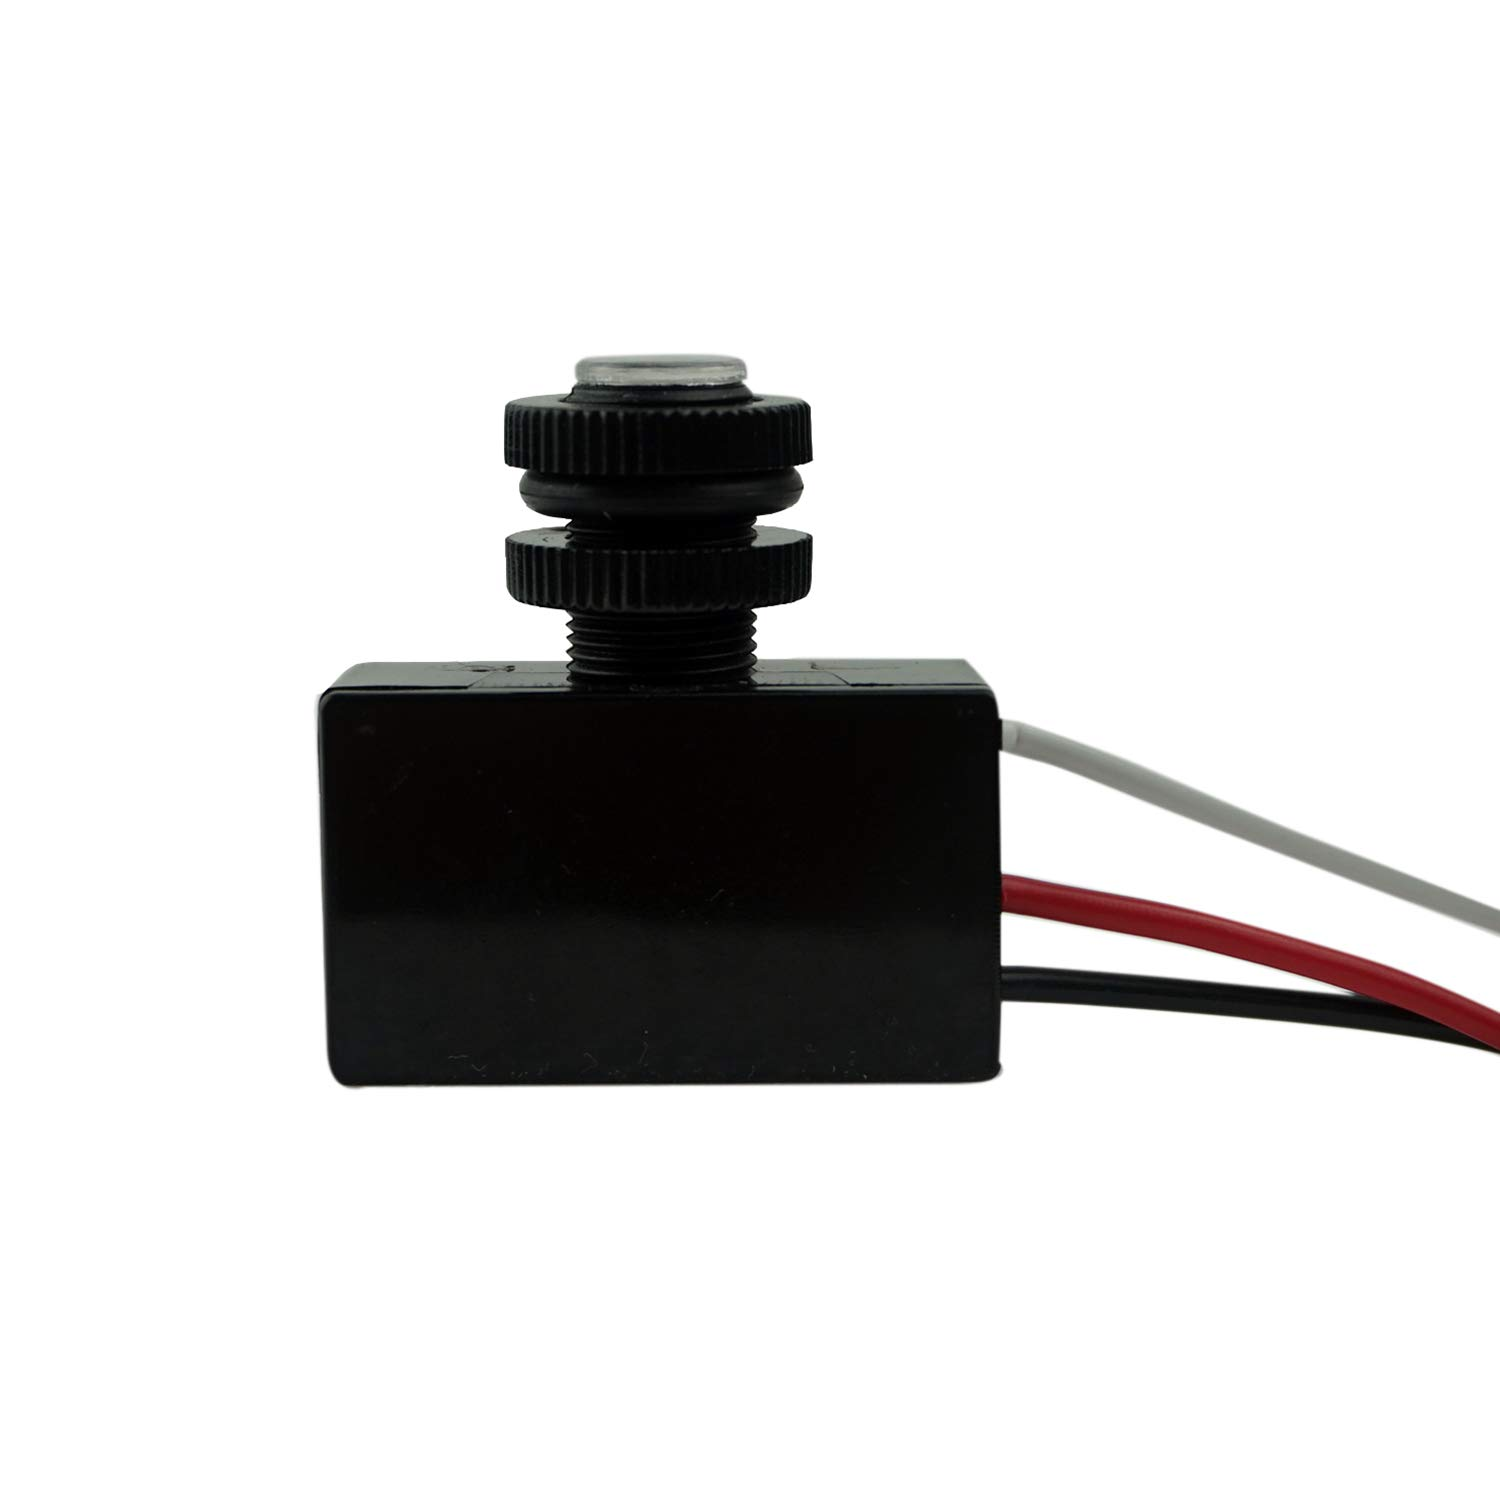 Proshopping AC 90V-277V Outdoor Sensor Photoelectric Switch